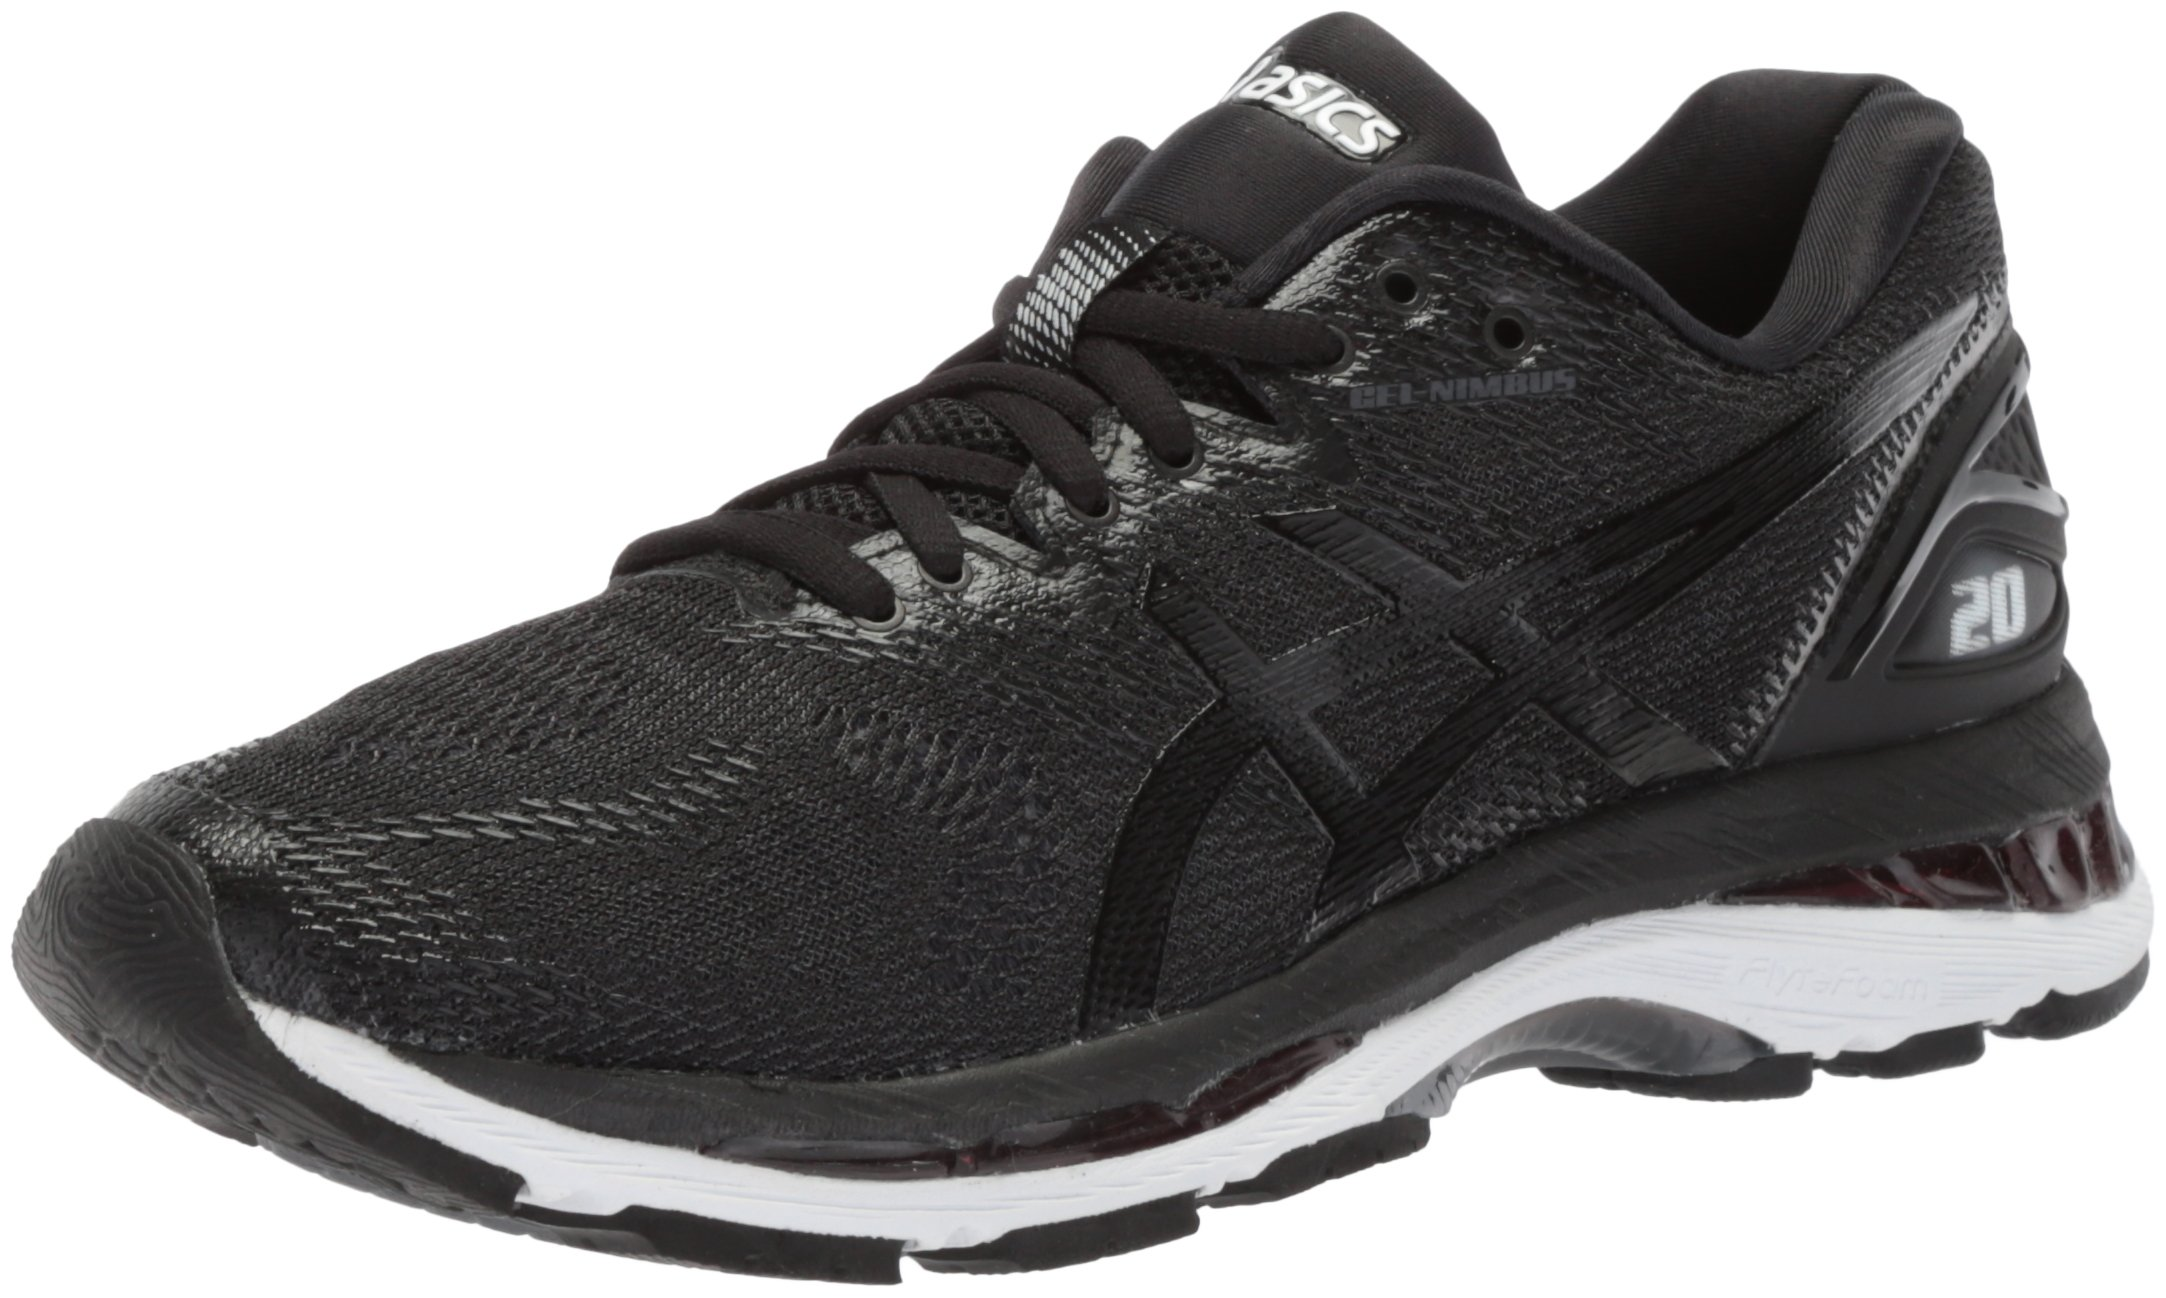 ASICS Women's Fitness/Cross-Training Trail Running Shoe by ASICS